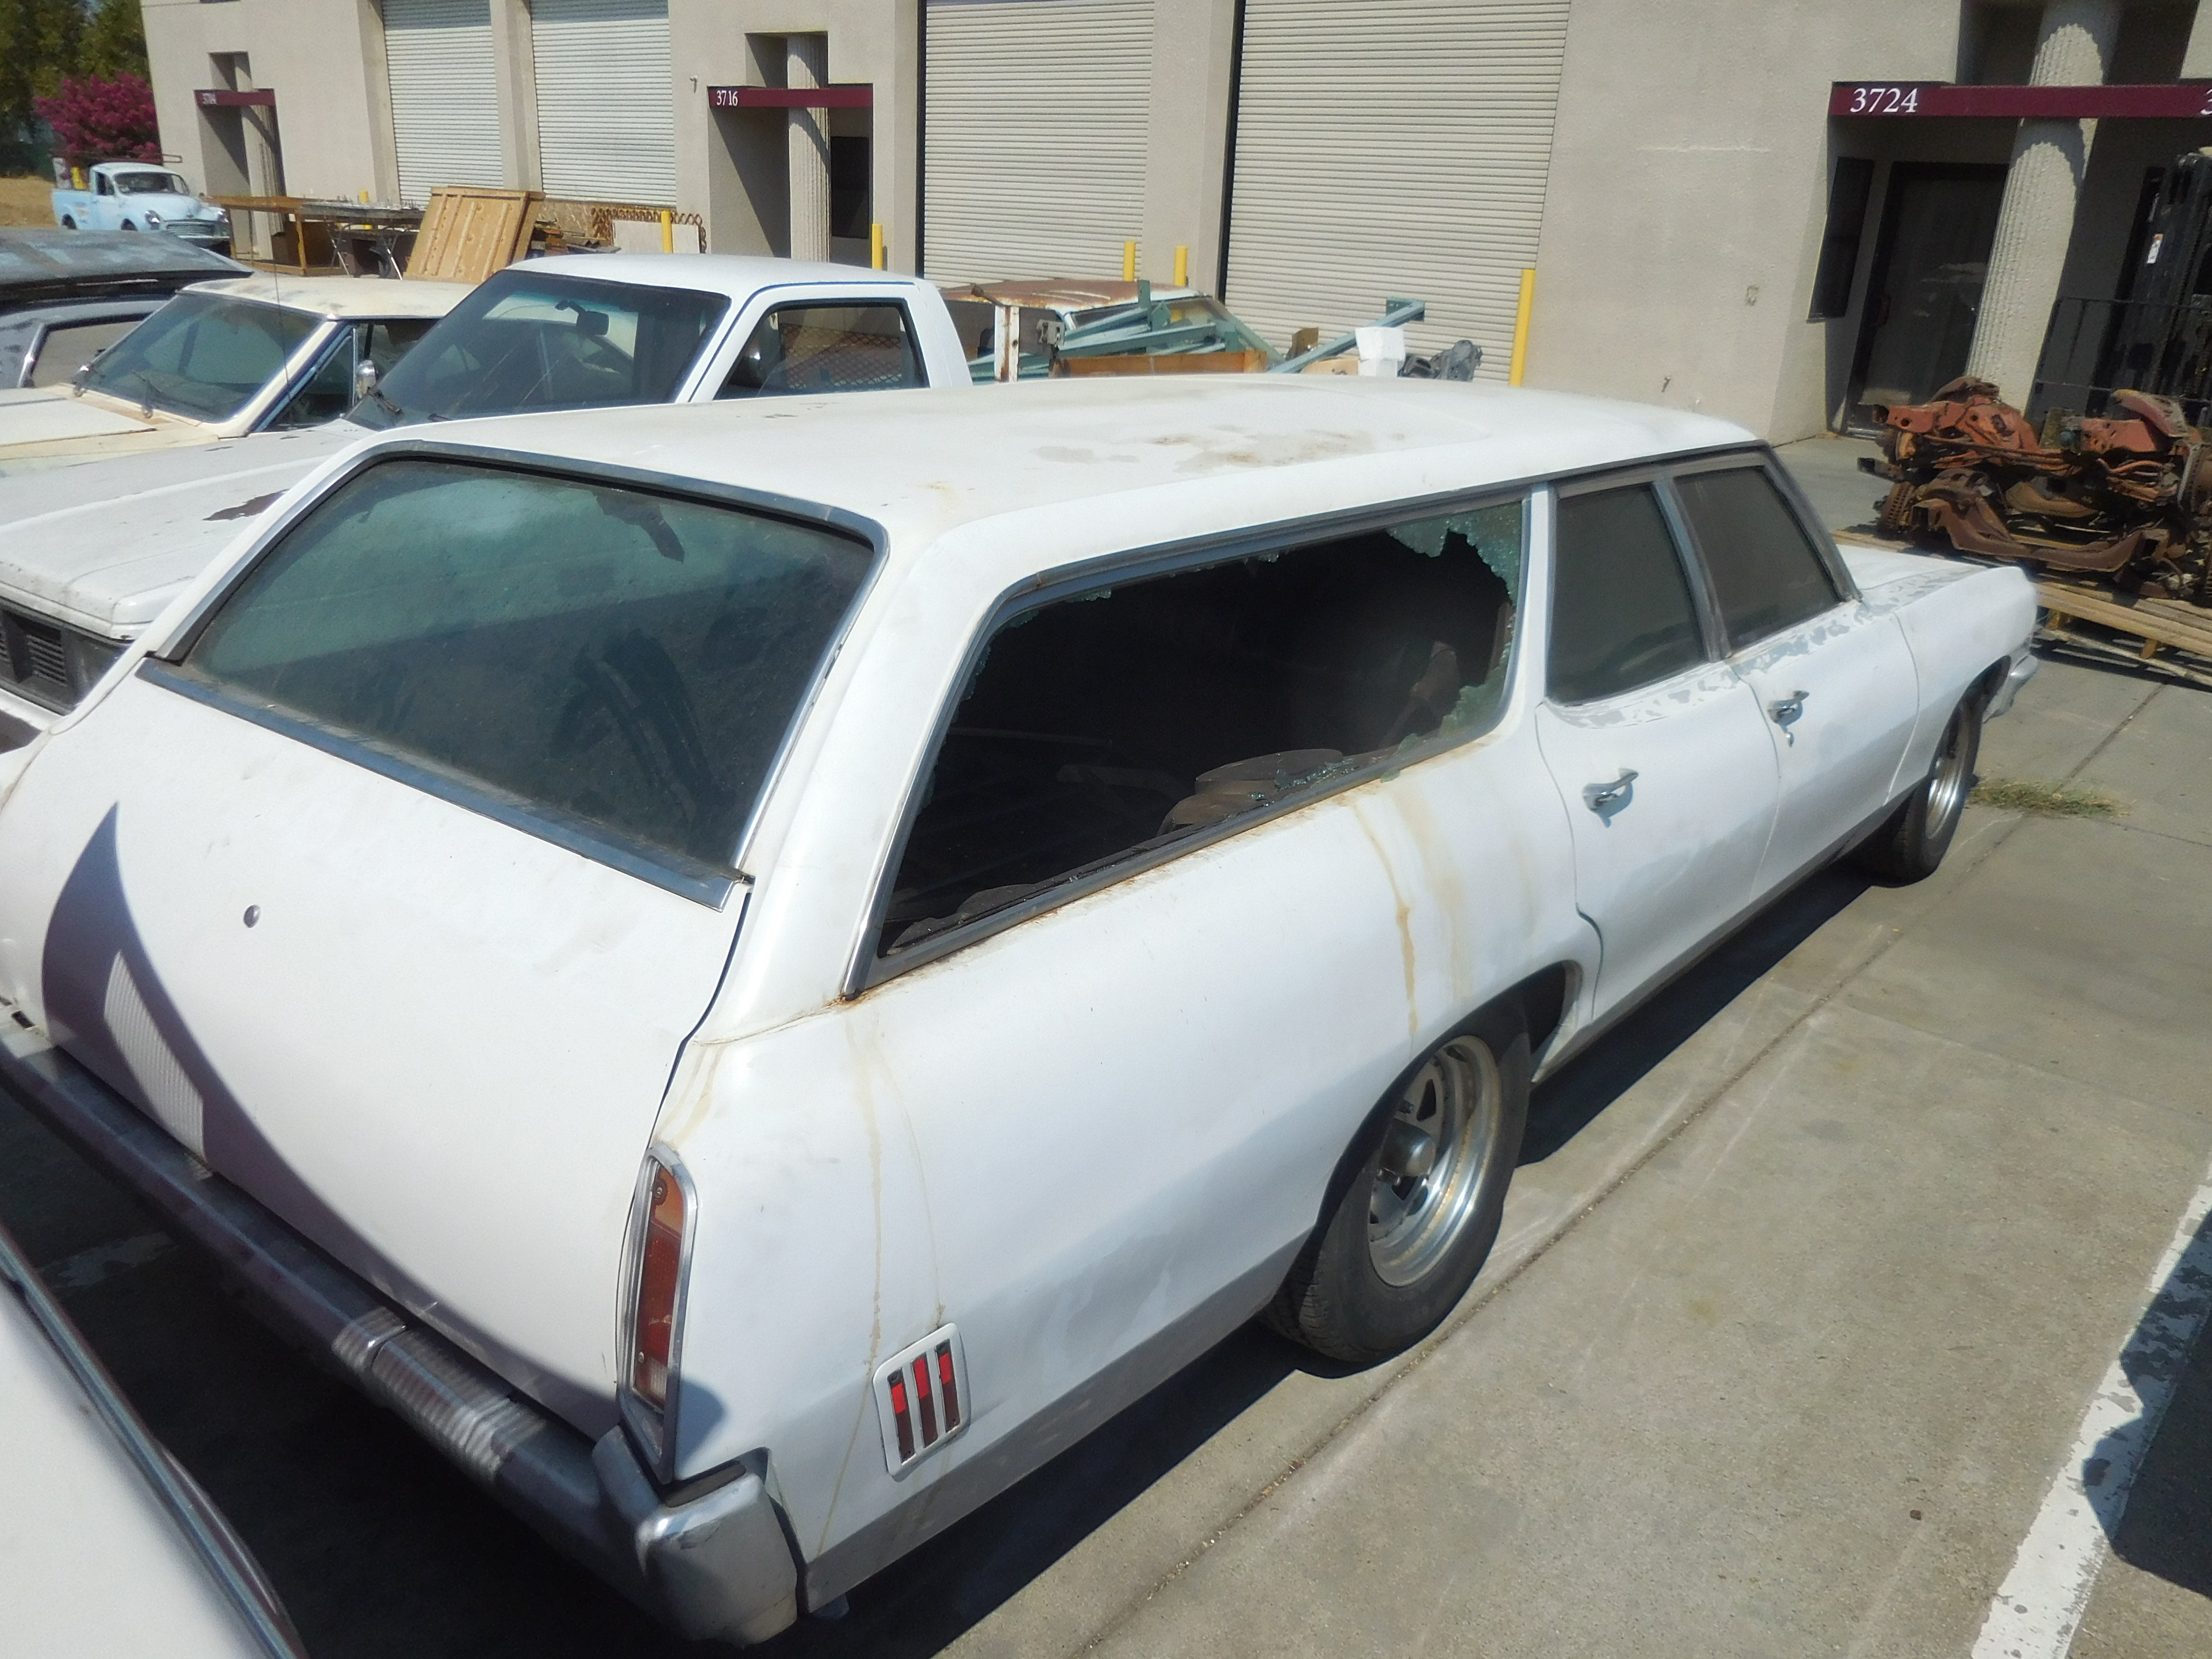 1970, Pontiac, Bonneville, Station, Wagon, with, Third, Seat,